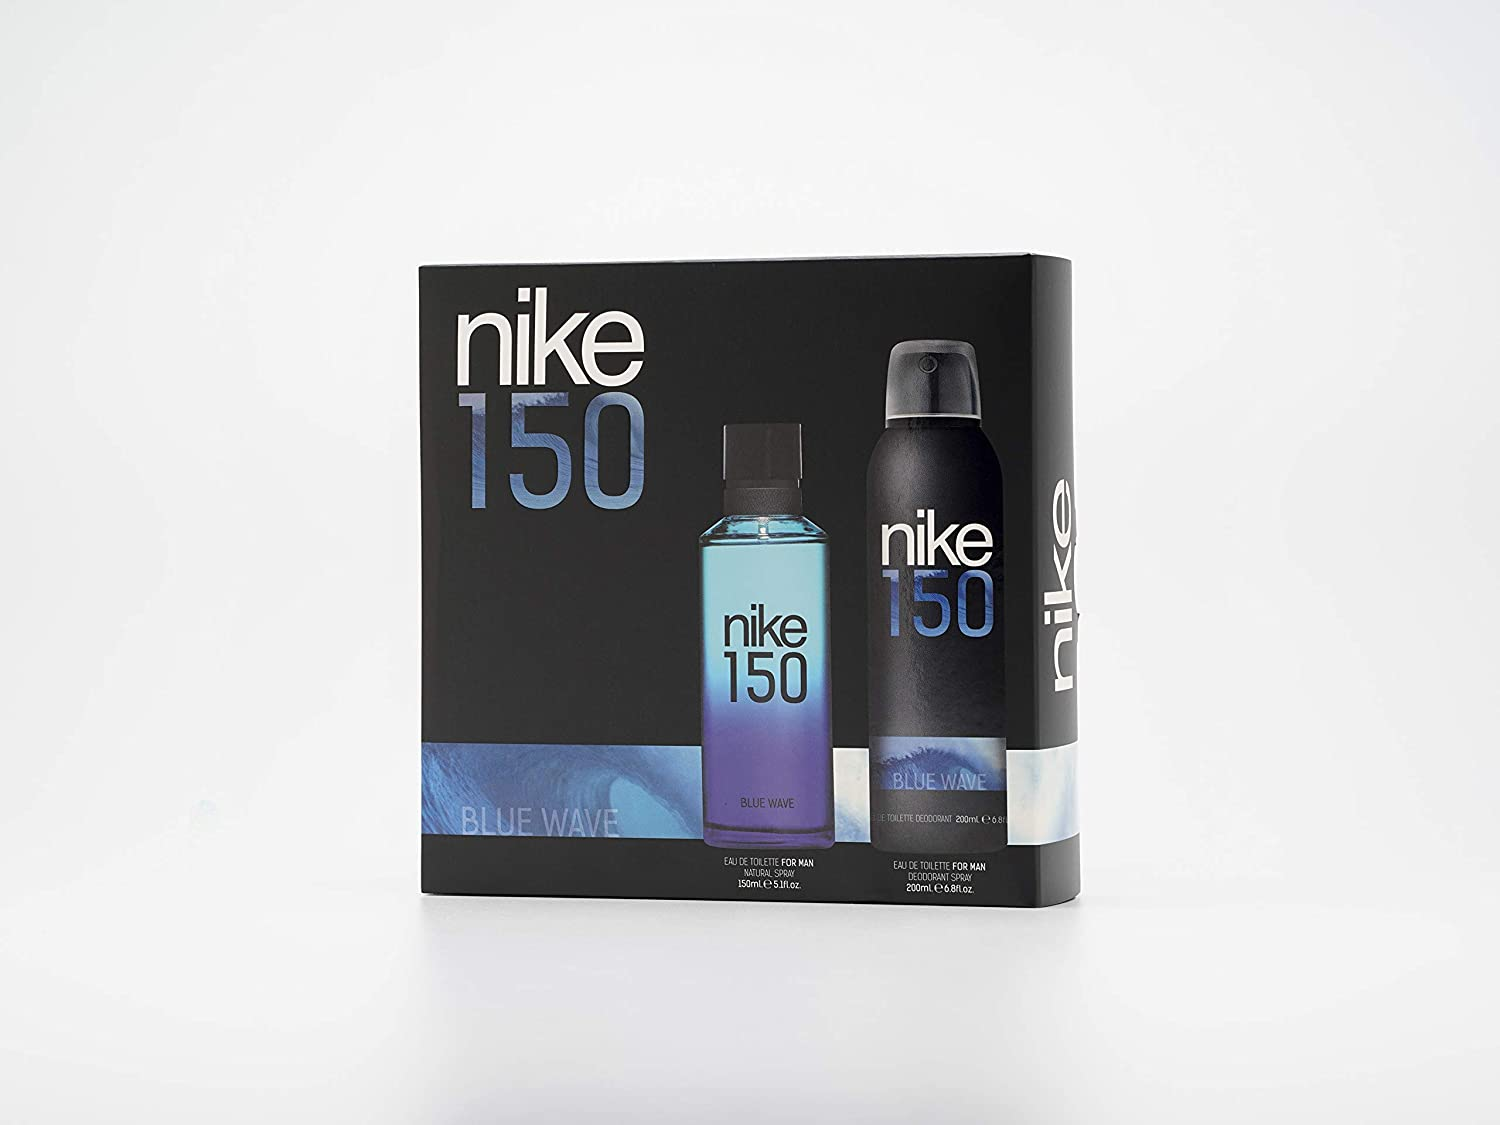 Nike - Blue Wave Estuche de Regalo para Hombre, Eau de Toilette 150 ml y Desodorante en Spray 200 ml: Amazon.es: Belleza